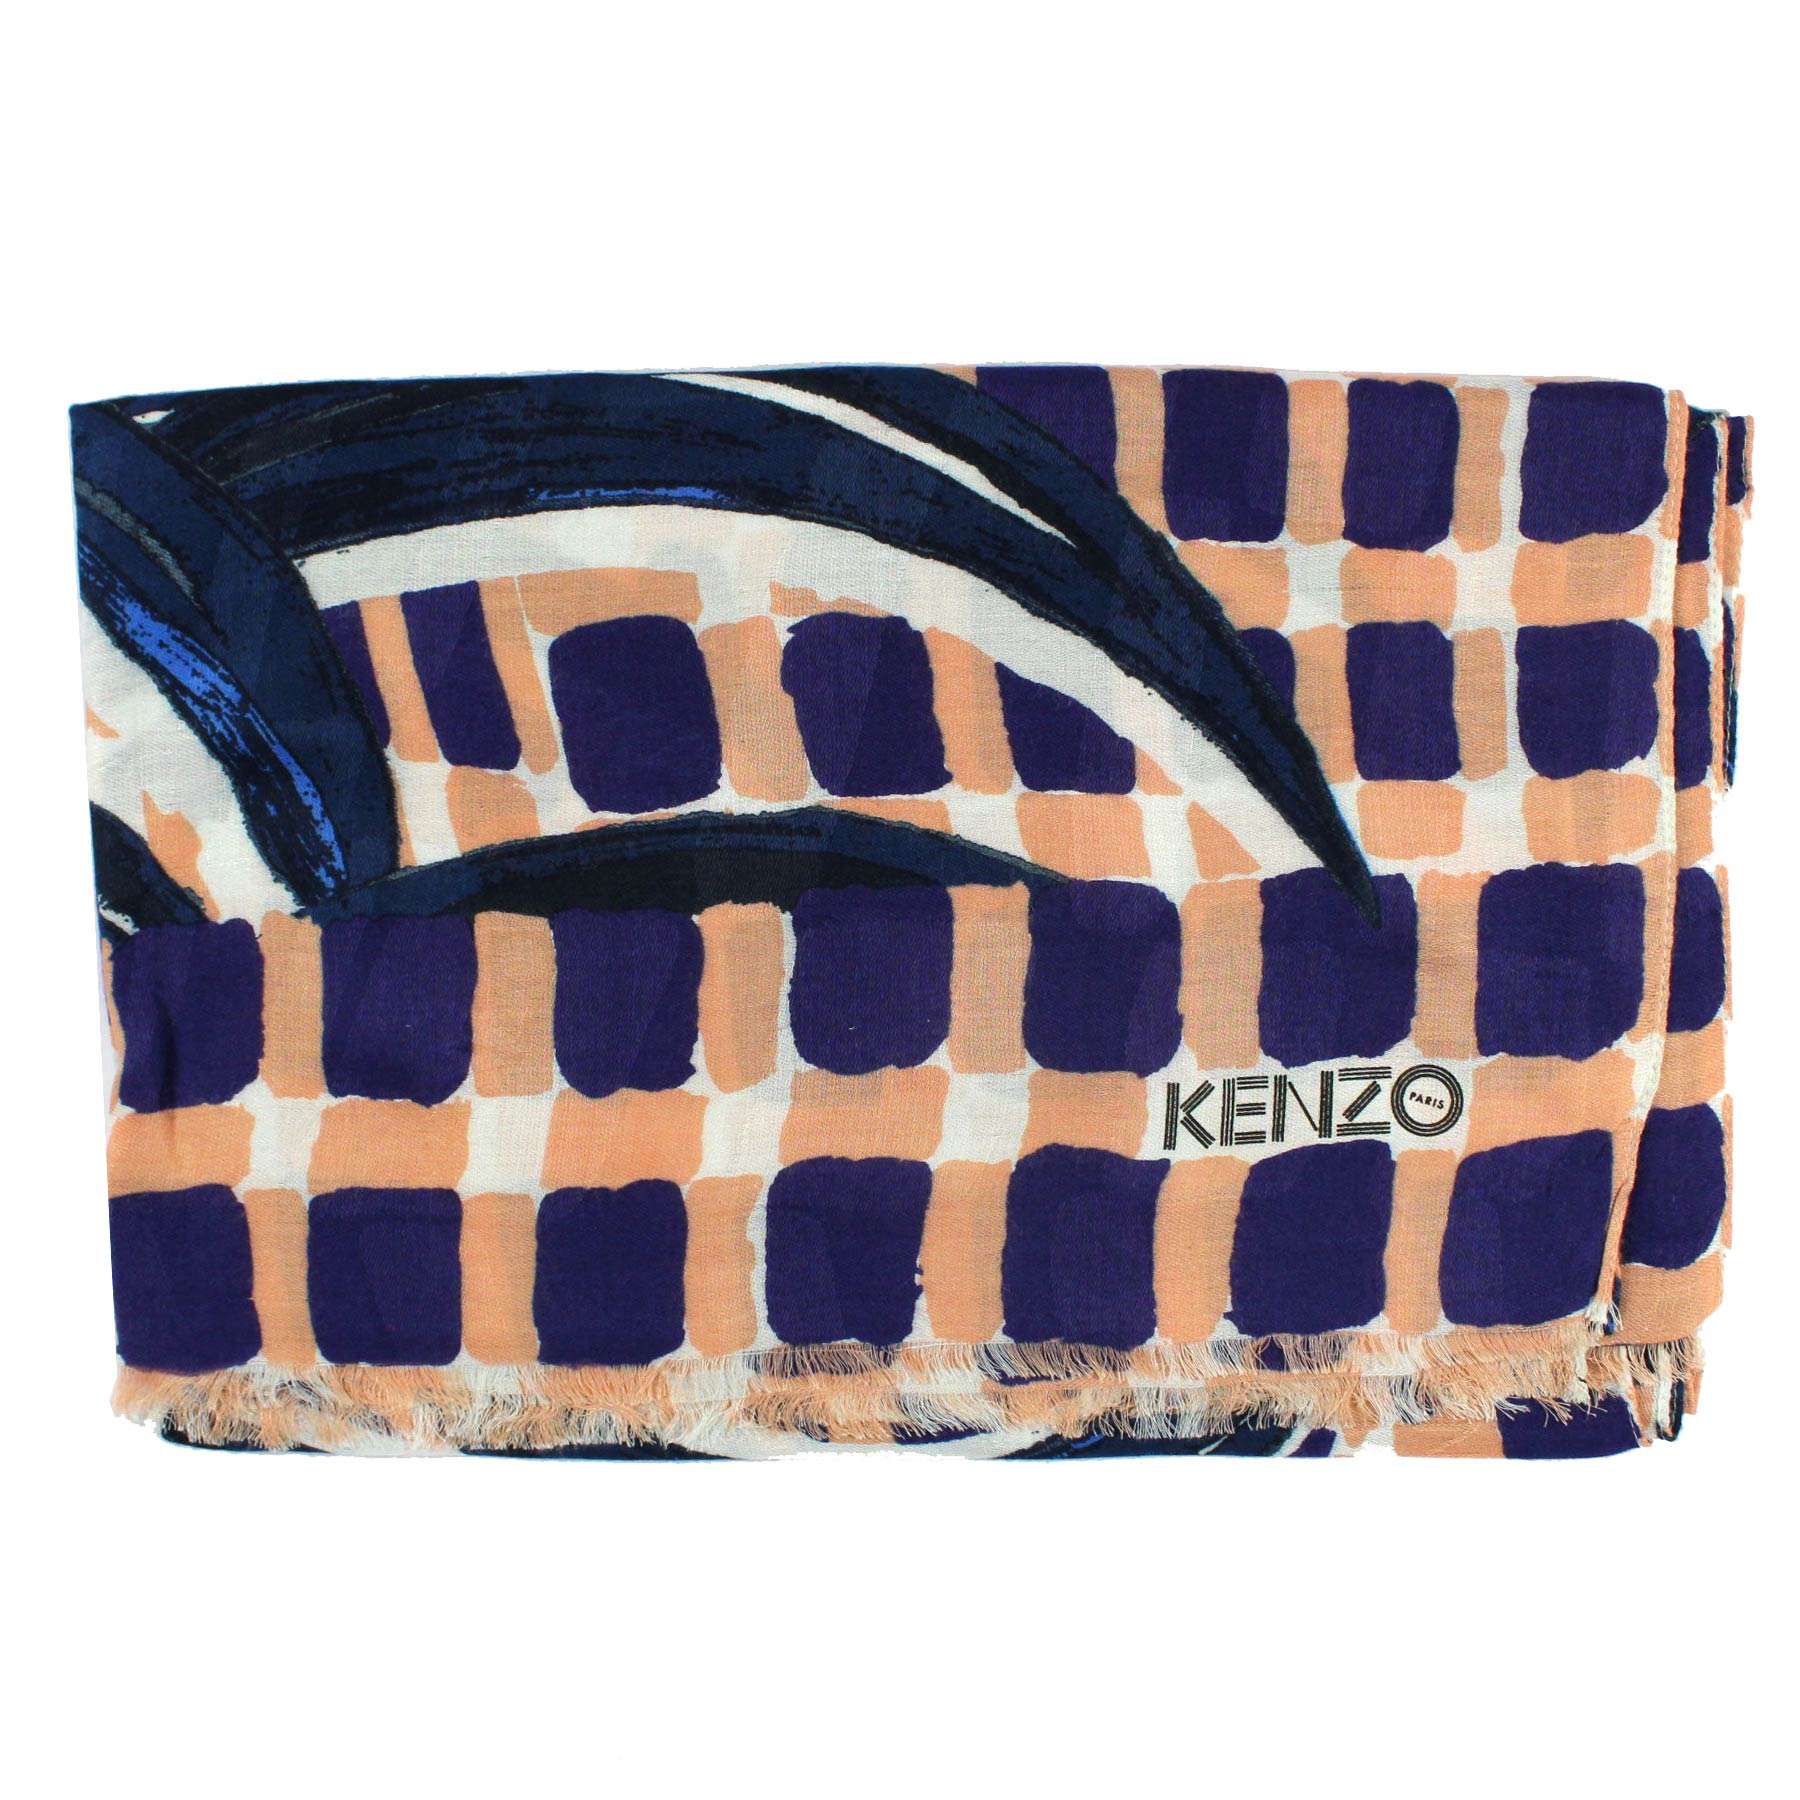 Kenzo Scarf Purple Pink Design - Modal Shawl New